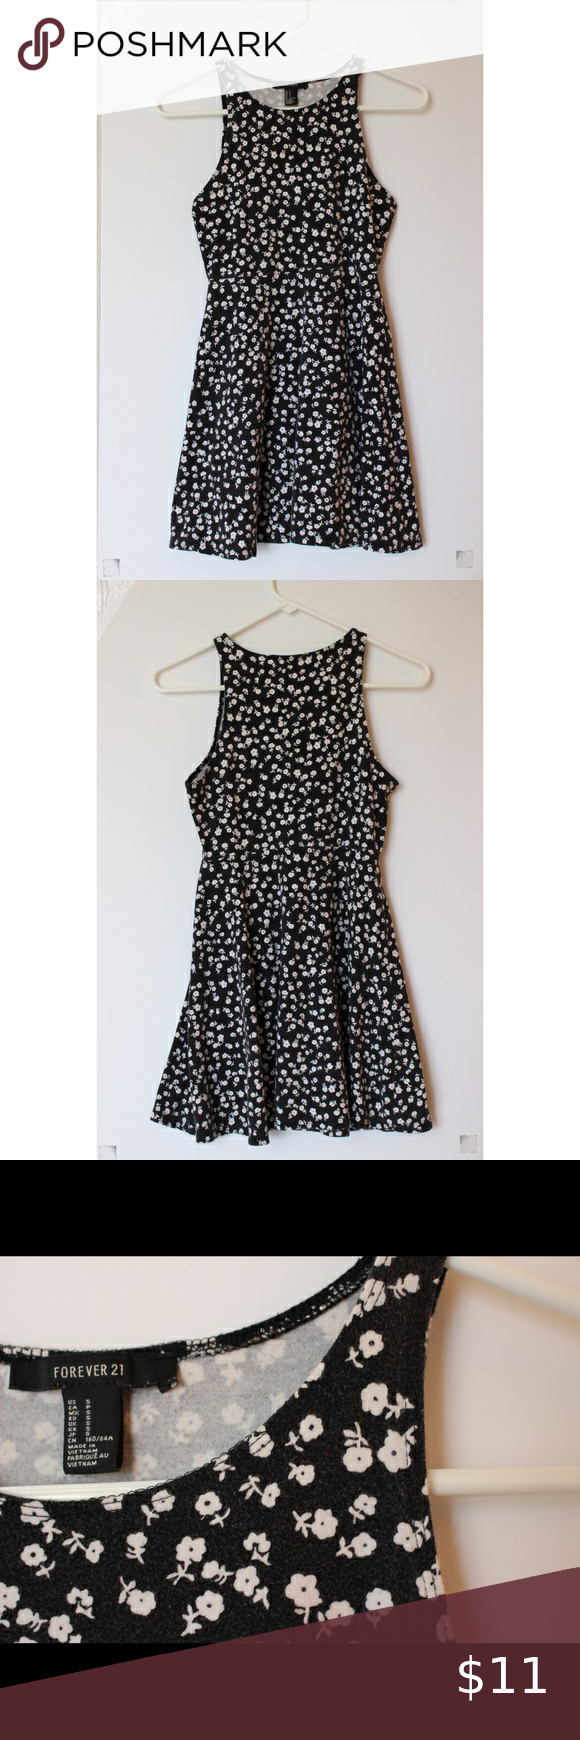 Forever 21 Black Dress With White Flowers Size S This Dress Is Super Comfy And Stretchy 95 Cotton And 5 Sp Forever 21 Black Dress Comfy Dresses Black Dress [ 1740 x 580 Pixel ]